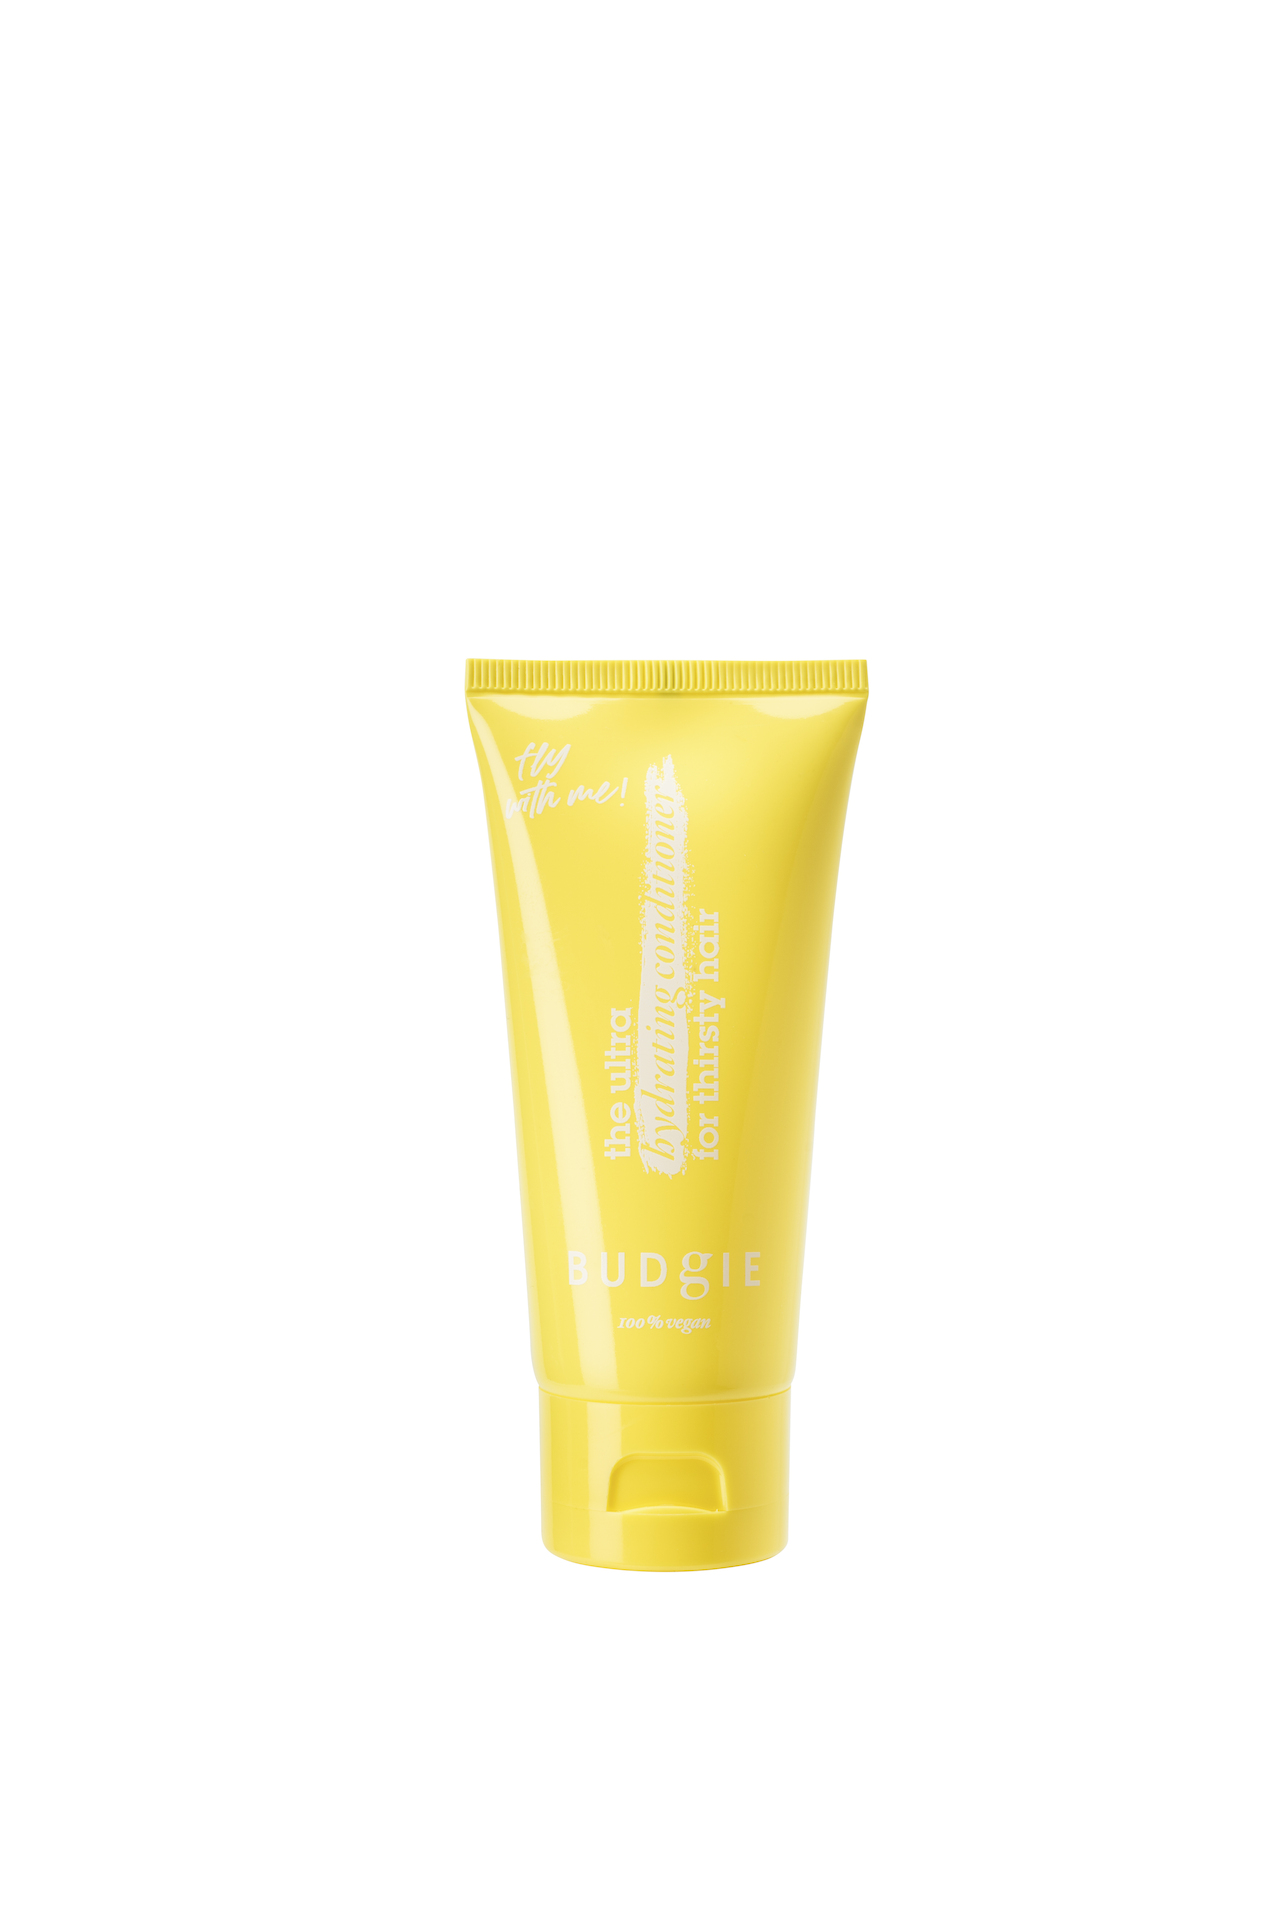 The Mini Hydrating Conditioner